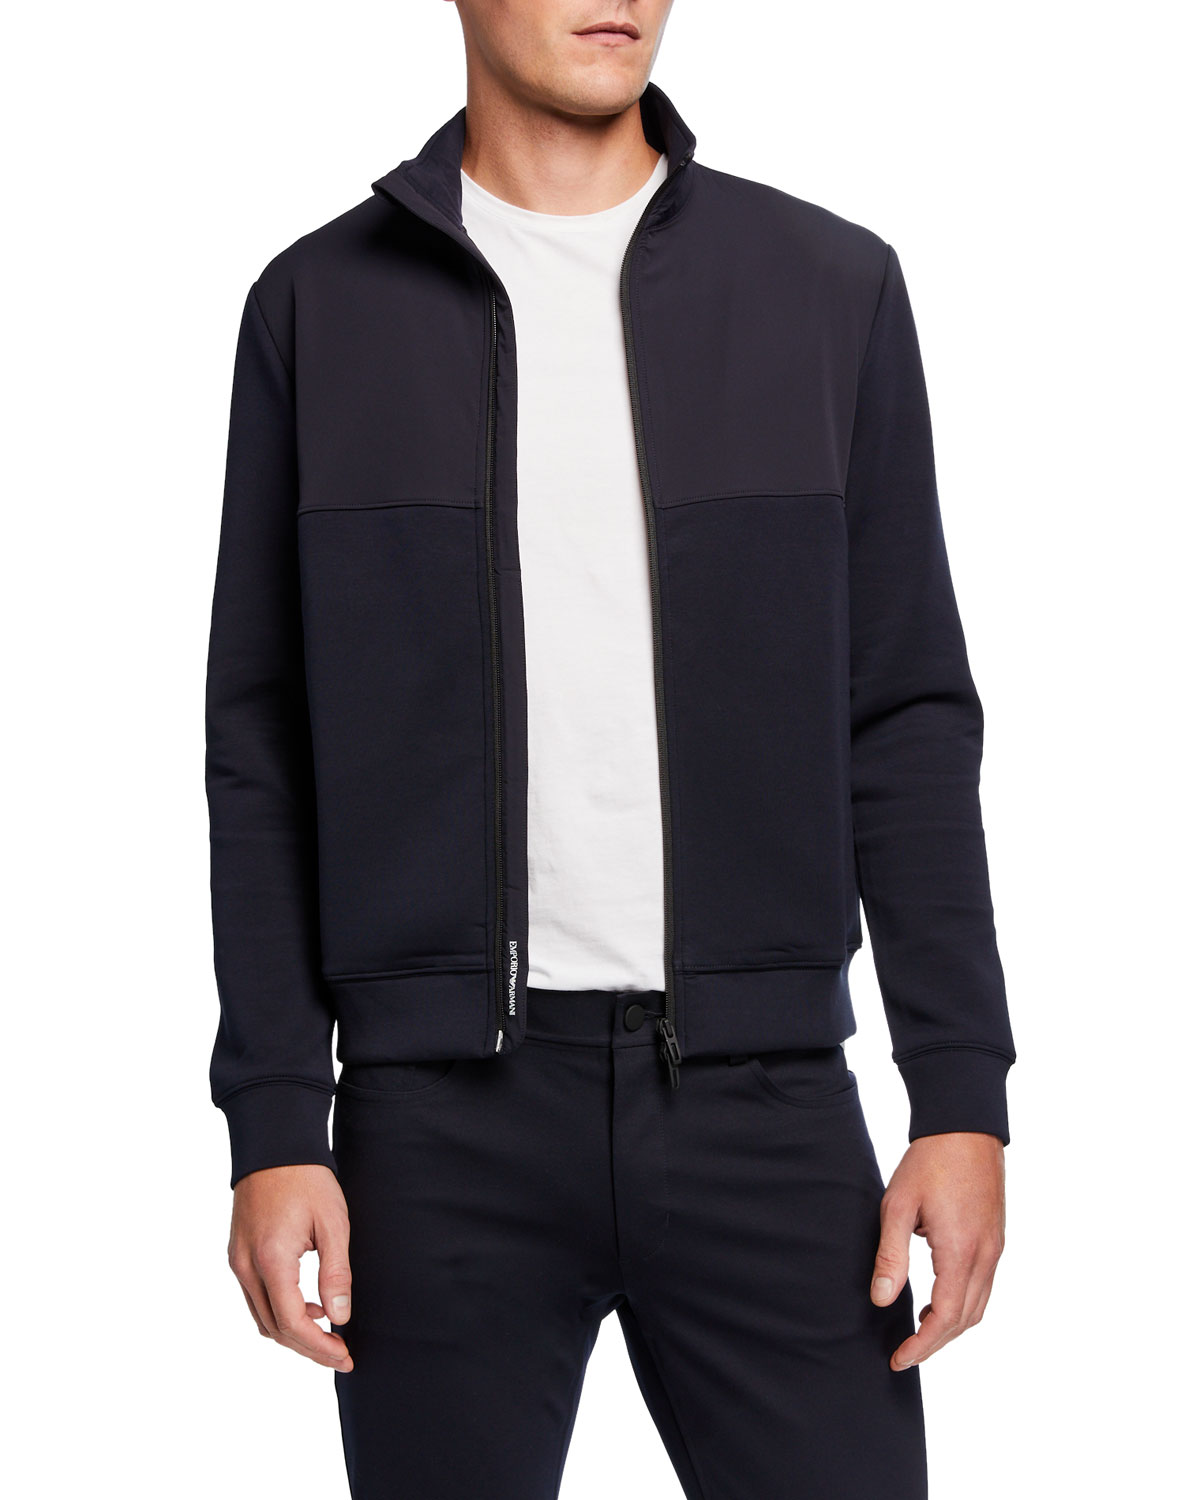 Emporio Armani Men's Double Jersey Travel Capsule Jacket